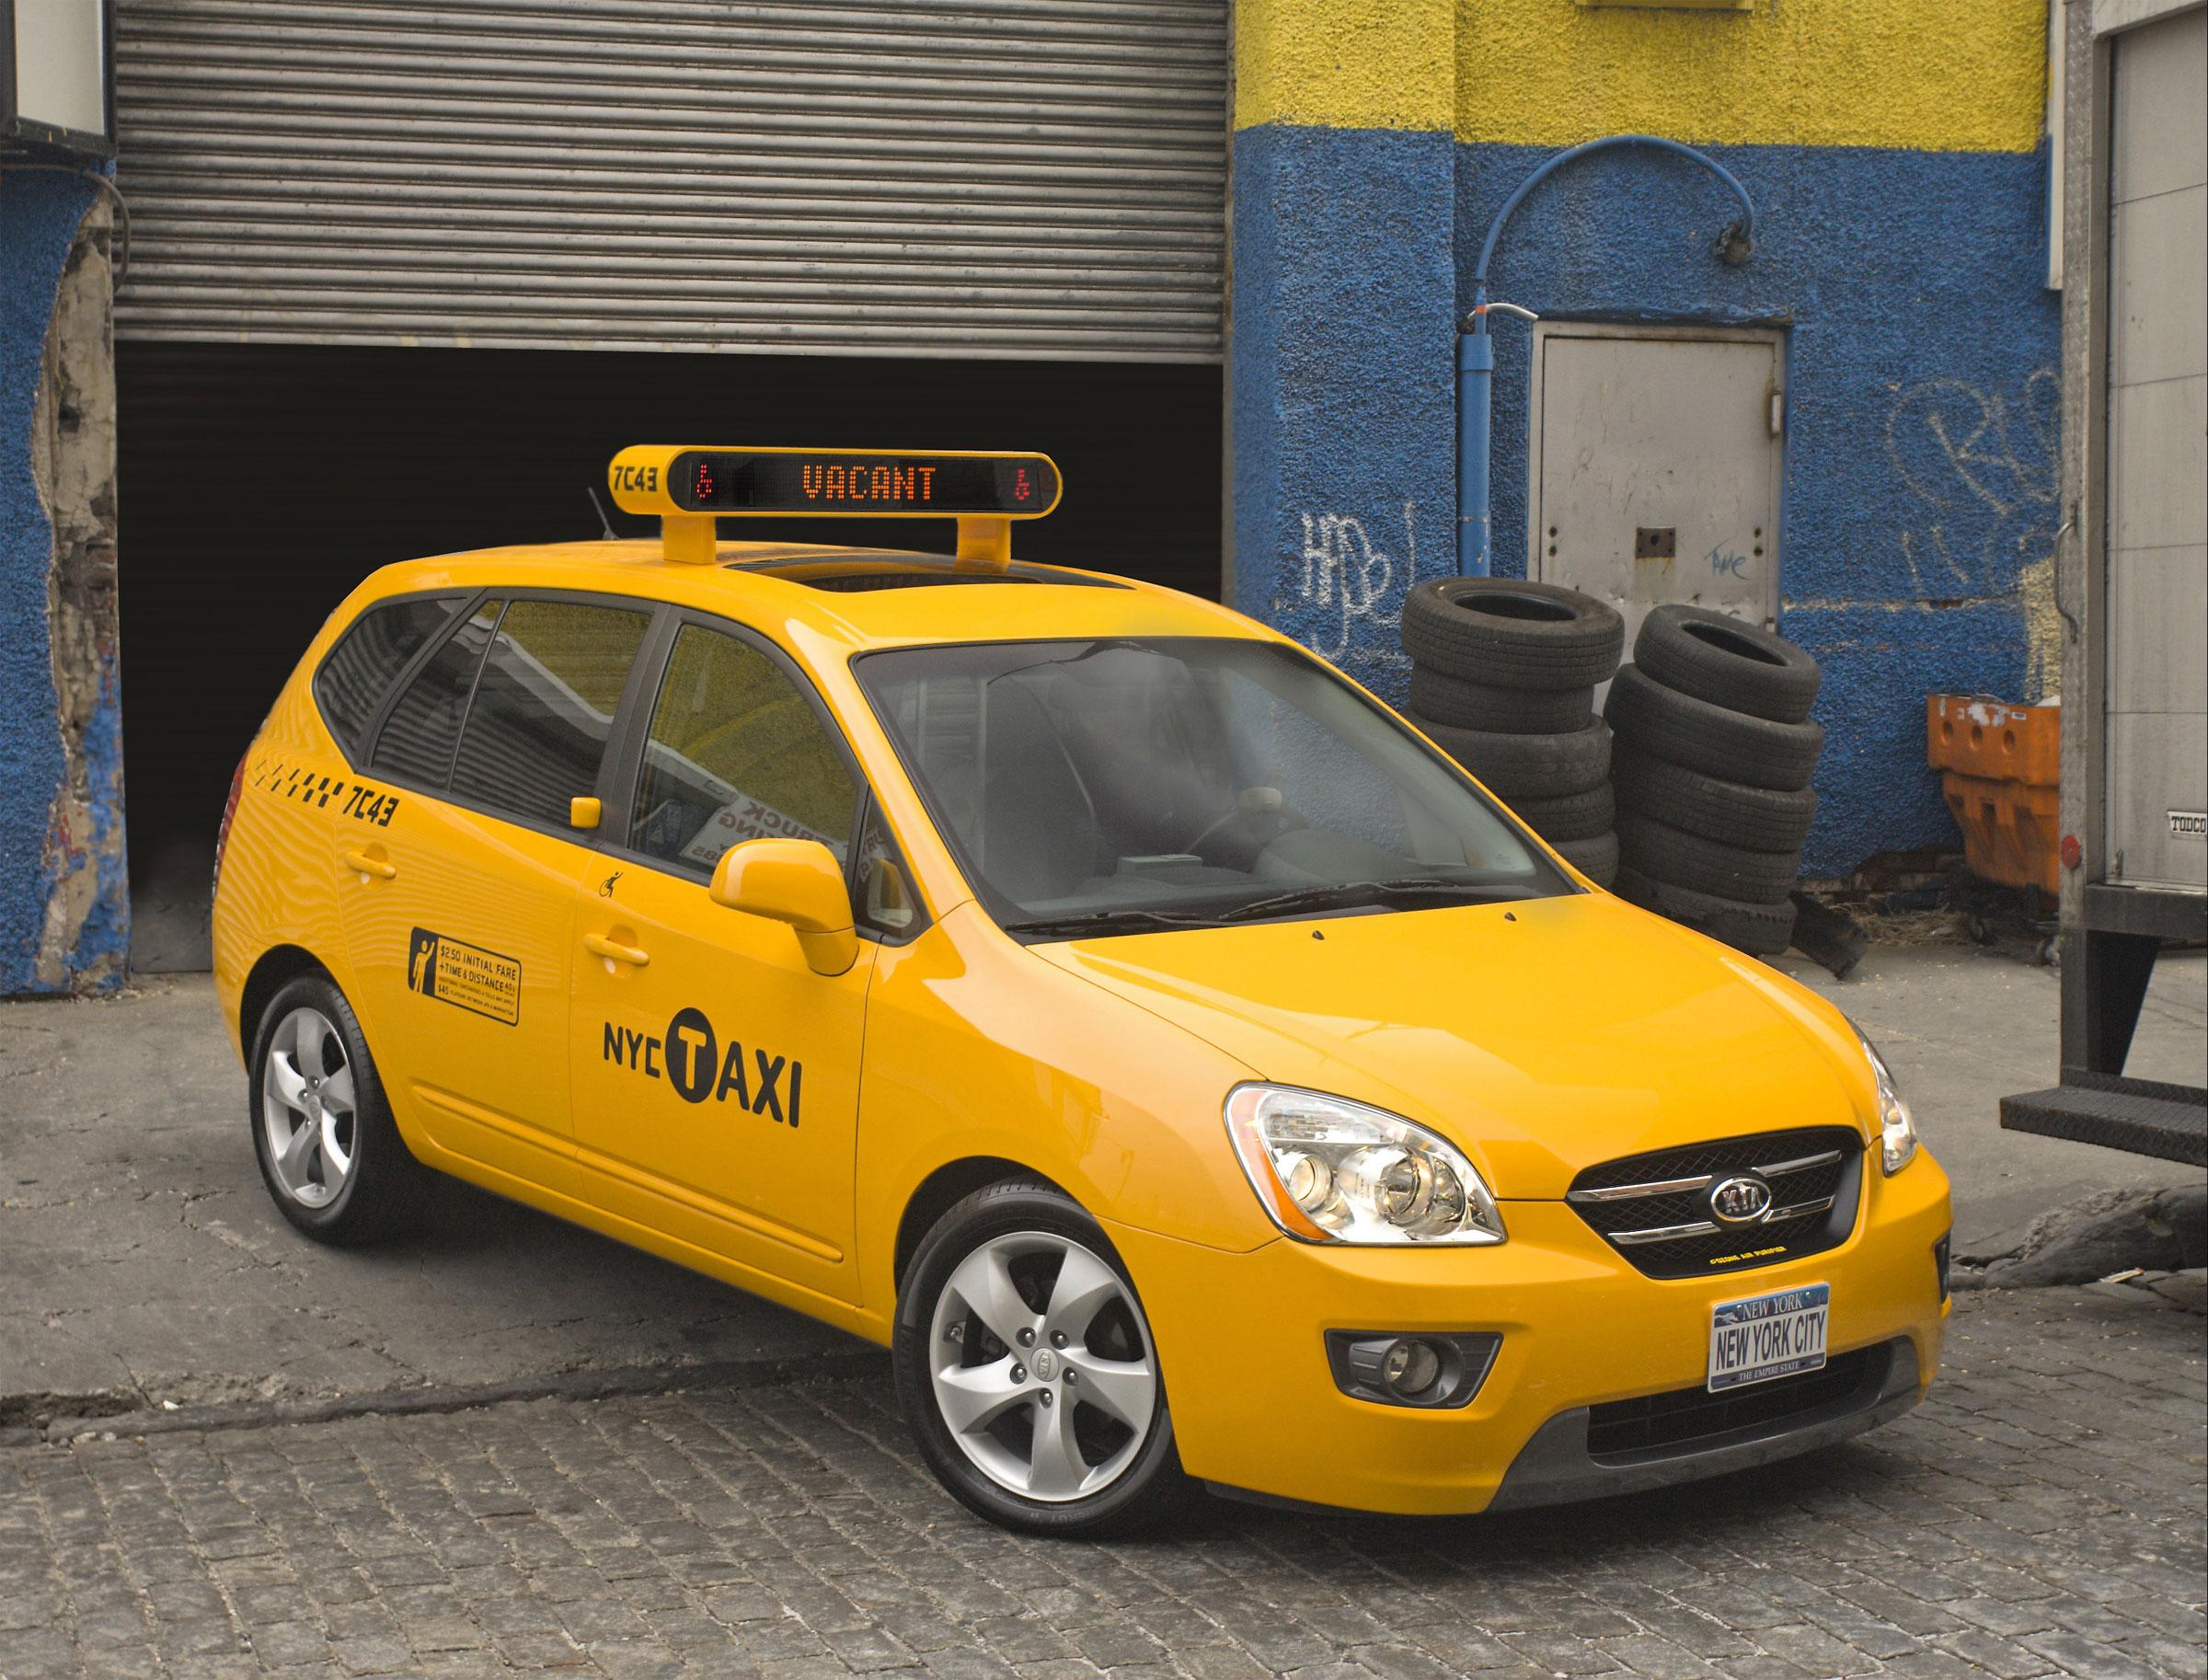 Auto Kia 2007 Kia Rondo Taxi Cab | Top Speed